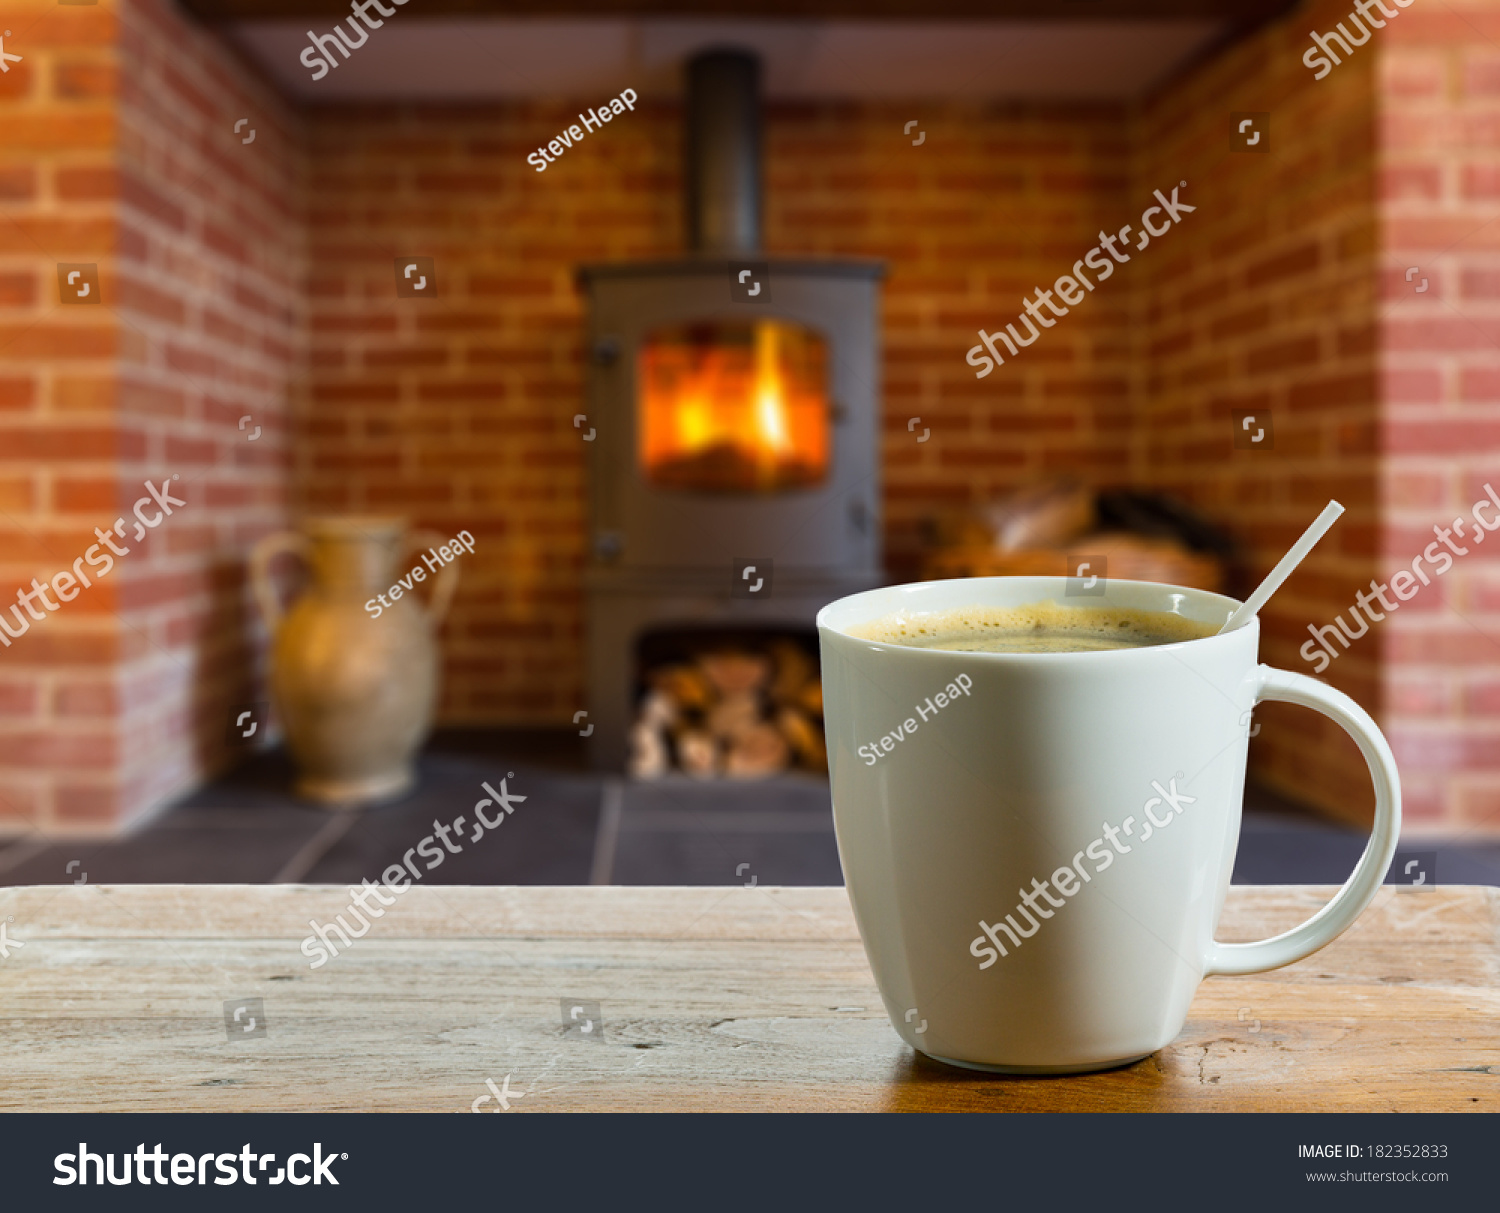 Coffee cup on wooden table front stock photo 182352833 shutterstock coffee cup on wooden table in front of roaring fire inside wood burning stove in brick geotapseo Gallery